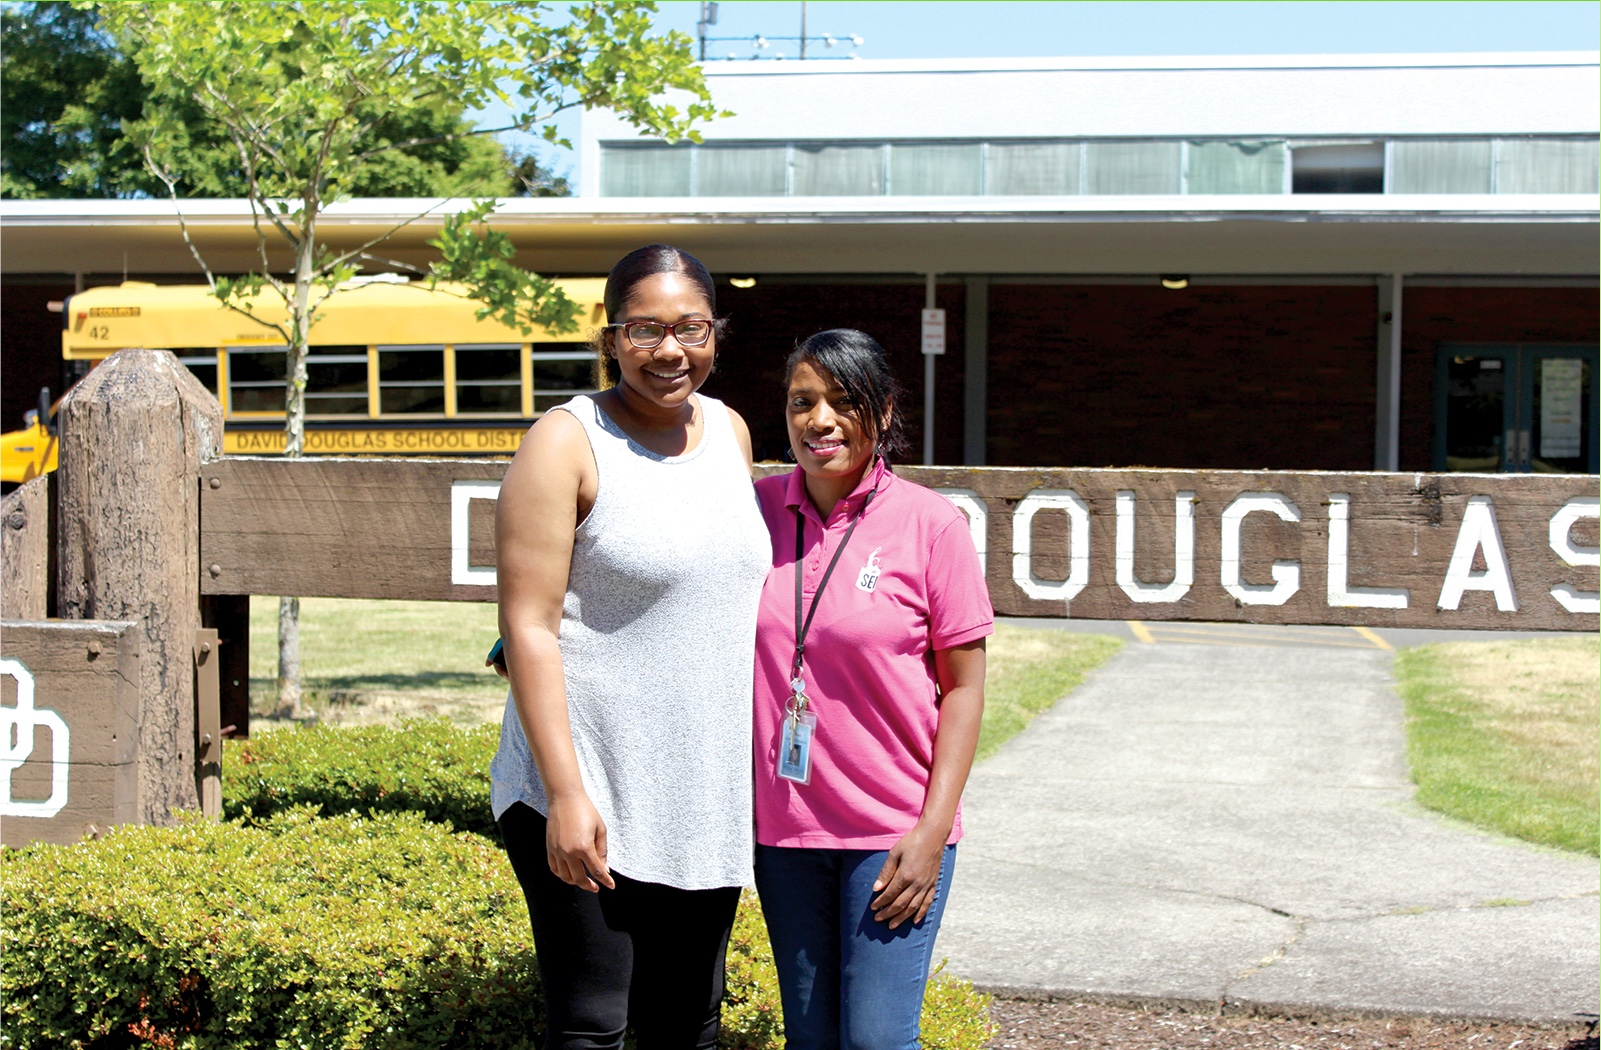 MyLin and Miki in front of David Douglas school